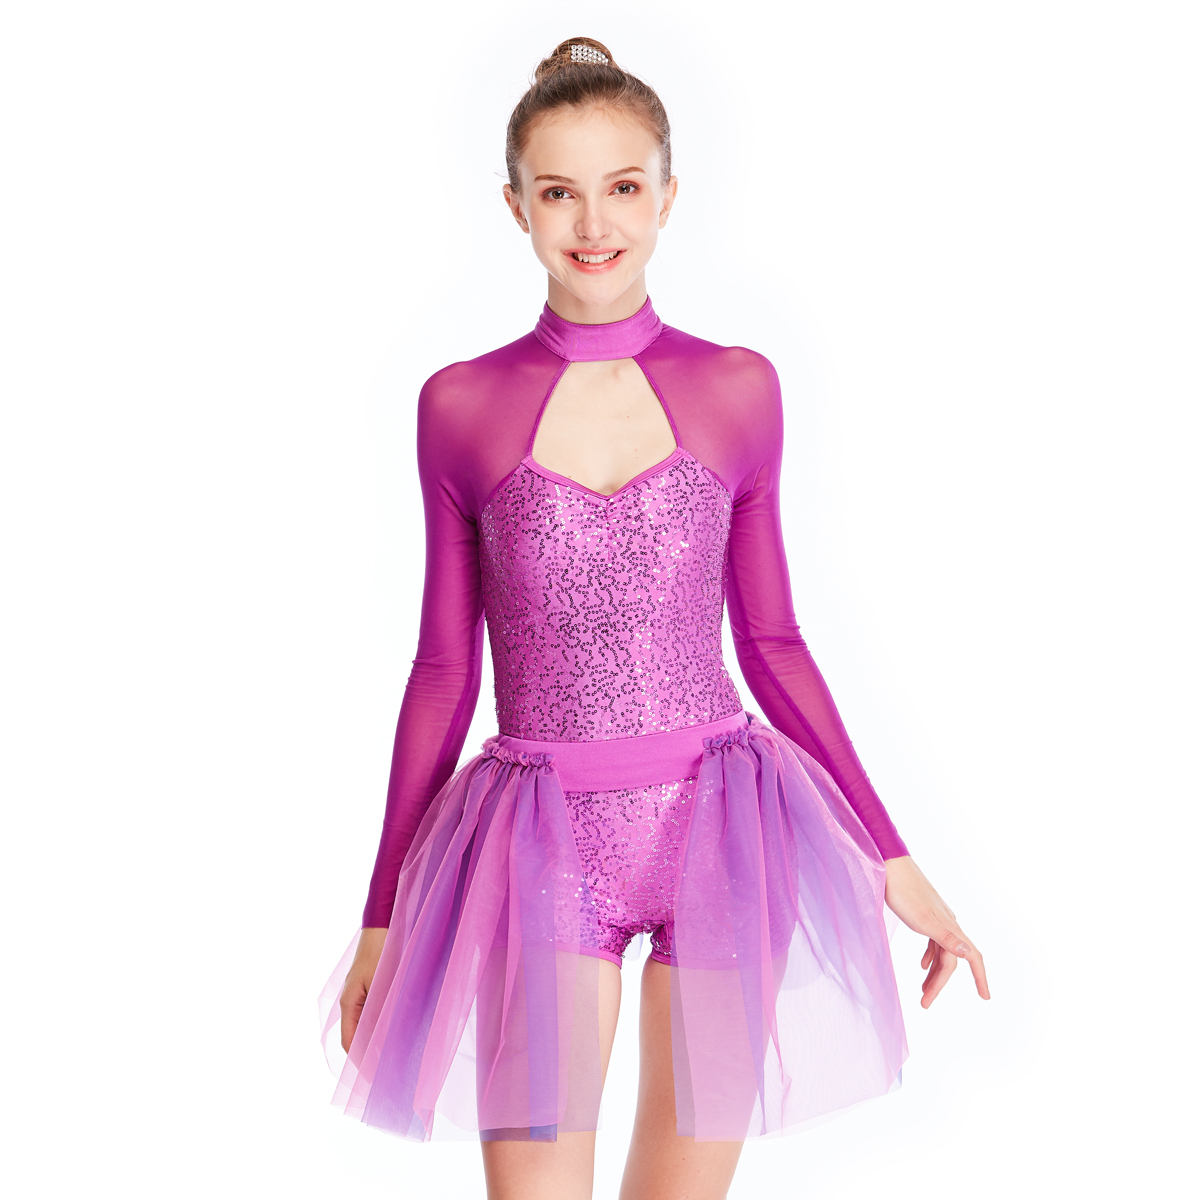 MIDEE long ballet dress toddler odm competition-2